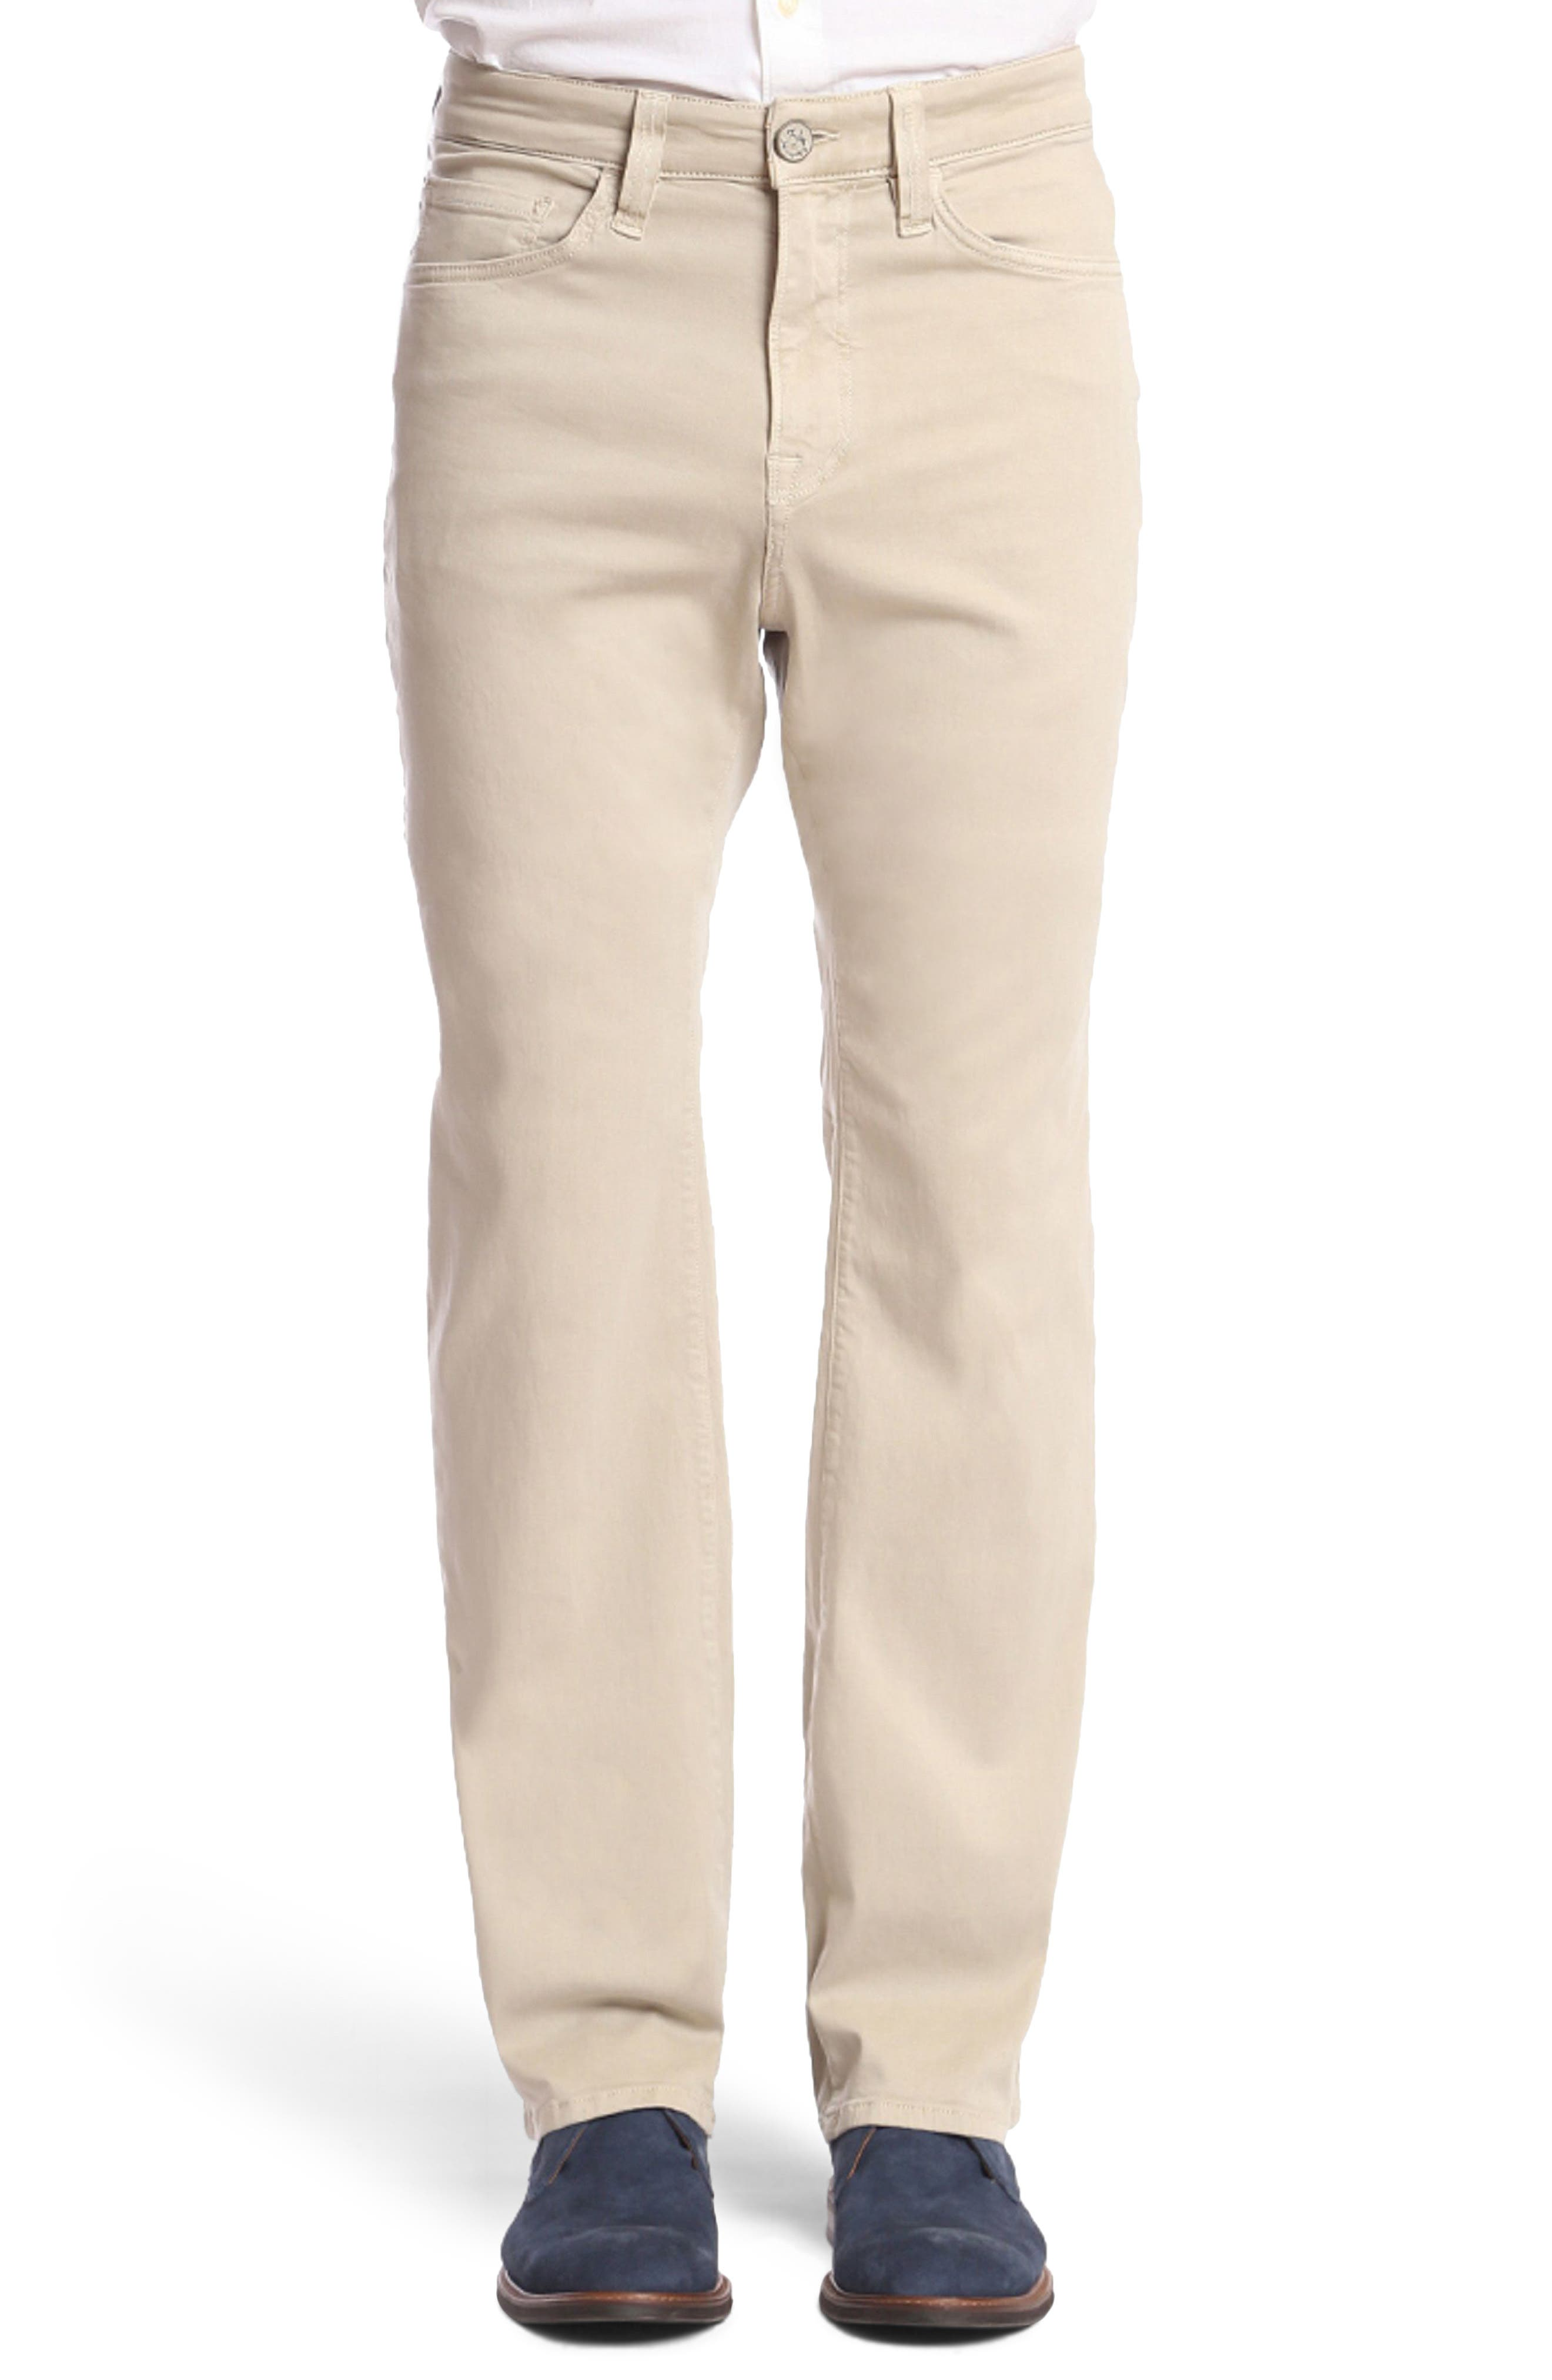 Charisma Relaxed Fit Jeans,                             Main thumbnail 1, color,                             250